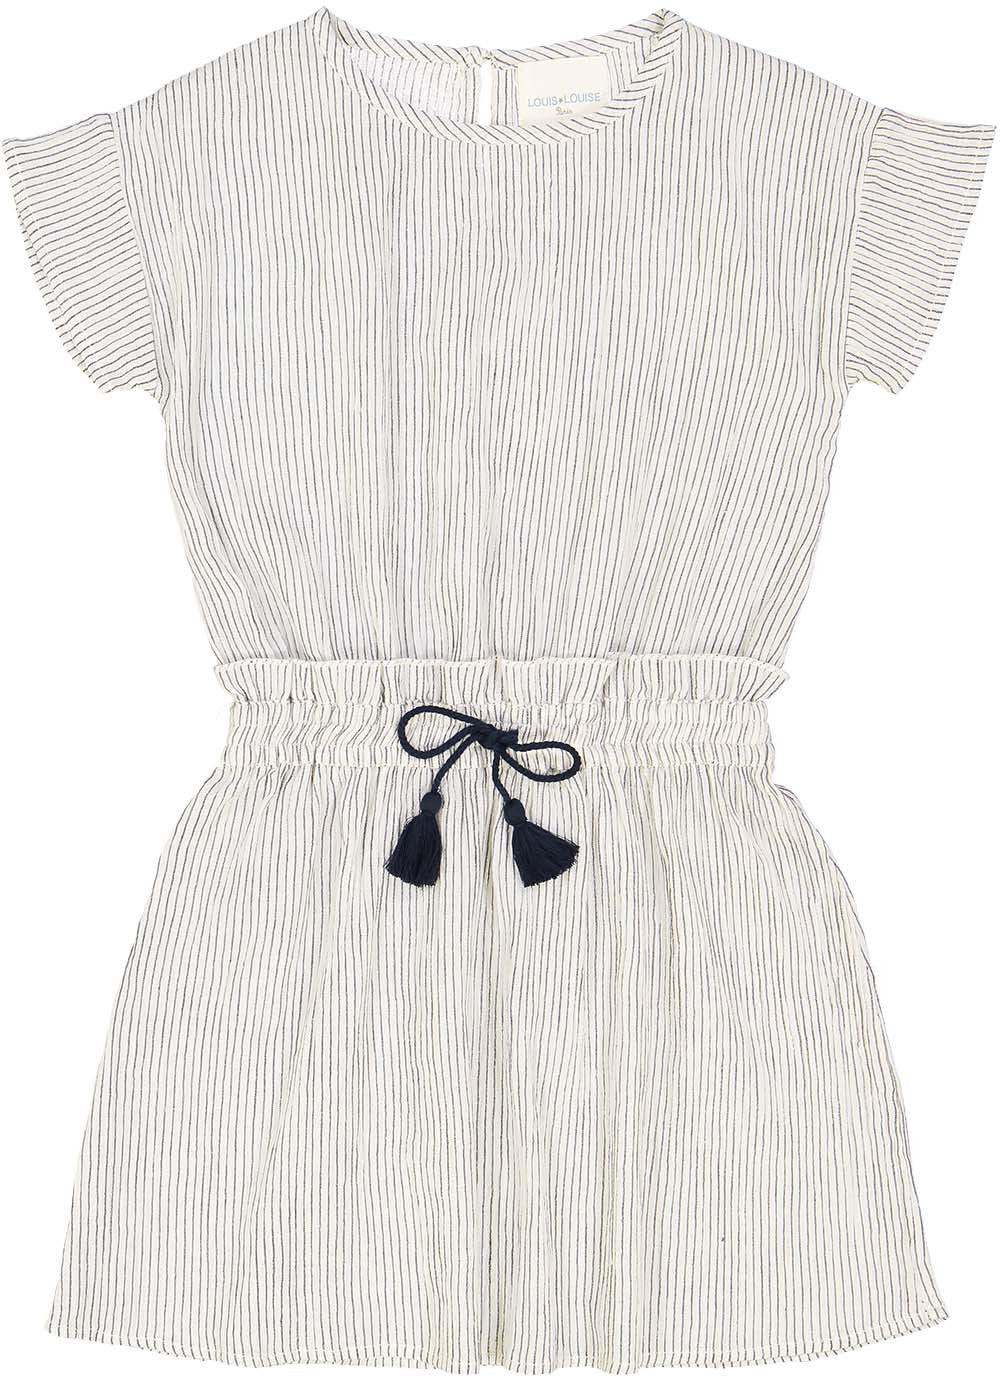 Louis Louise Navy/White Striped Tina Dress - Ladida